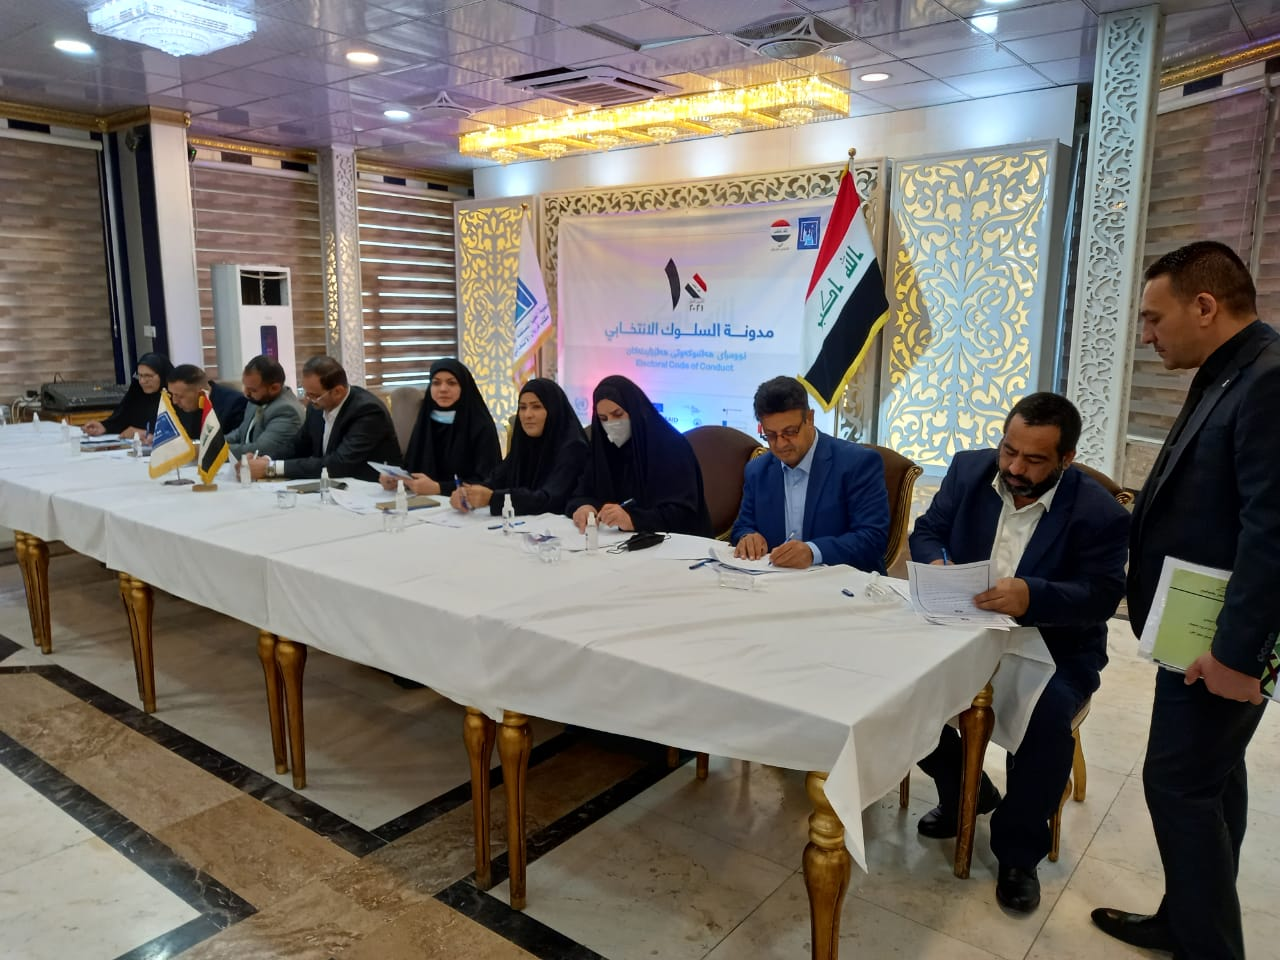 Iraq's political parties and independent candidates sign Electoral Code of Conduct as campaigns intensify